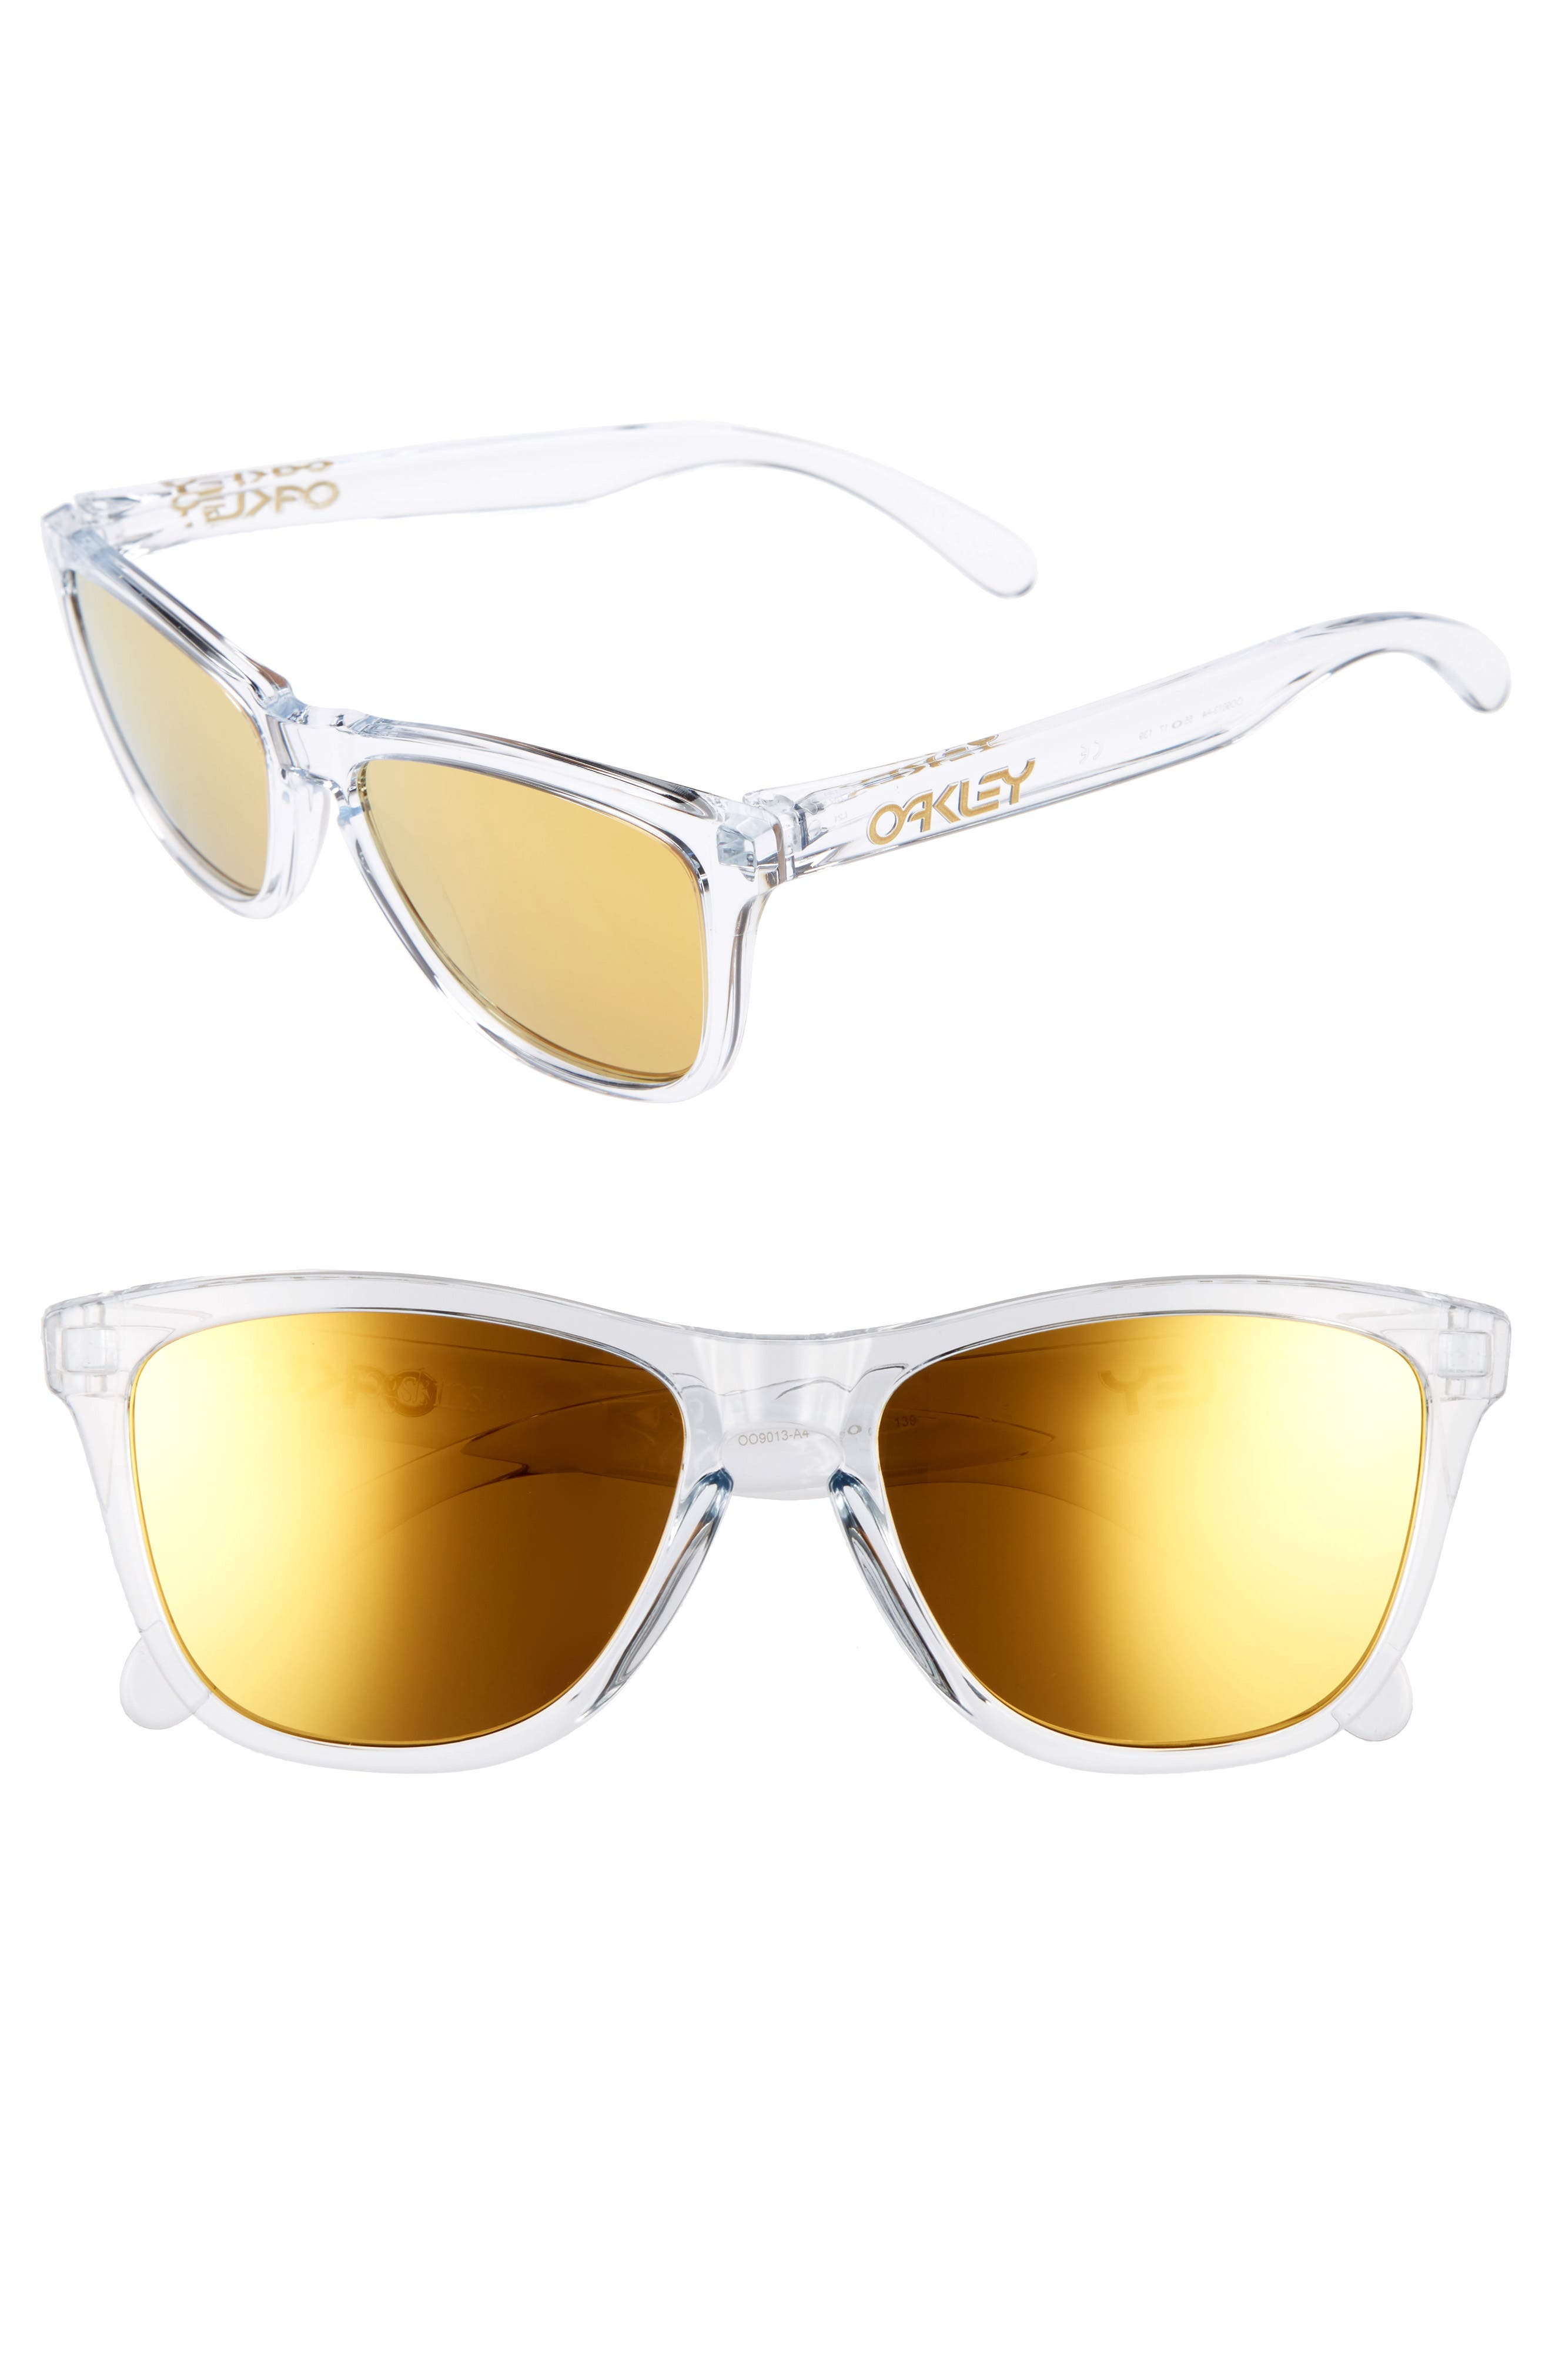 Frogskins<sup>®</sup> 55mm Sunglasses,                             Main thumbnail 1, color,                             960